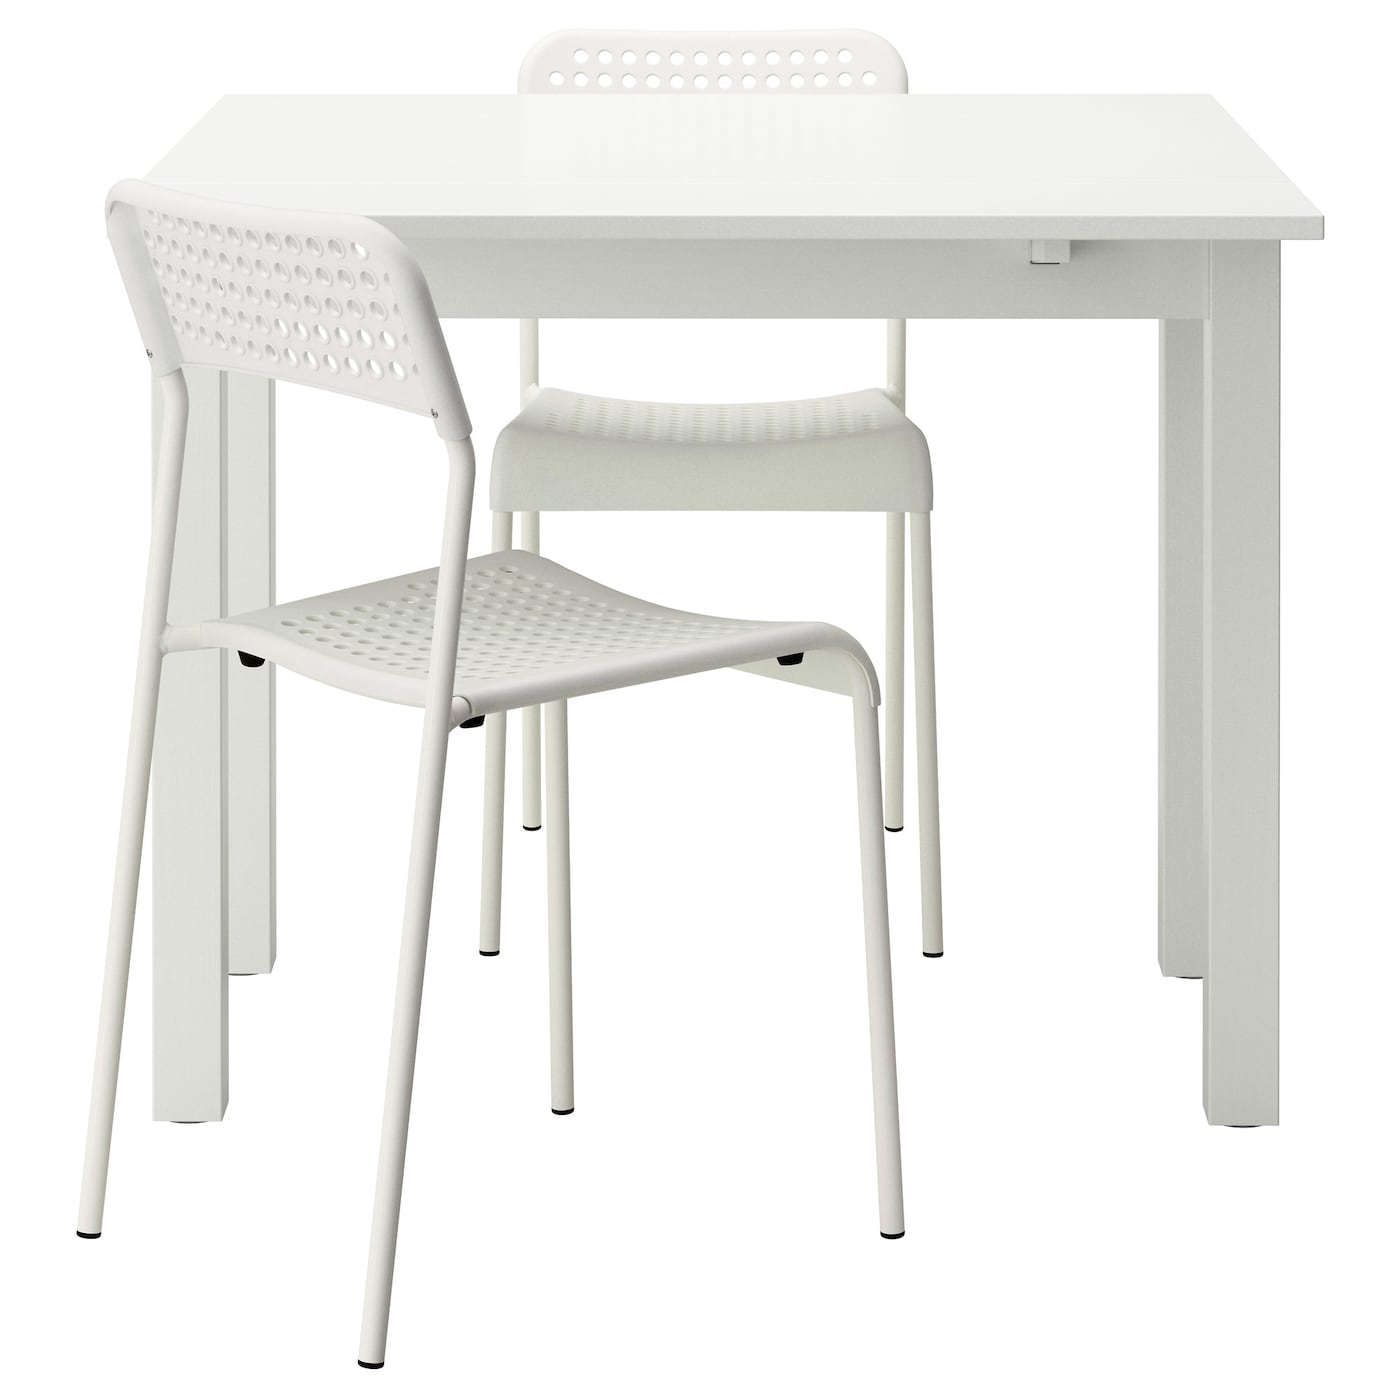 IKEA BJURSTA/ADDE table and 2 chairs Ideal as an end table against a wall.